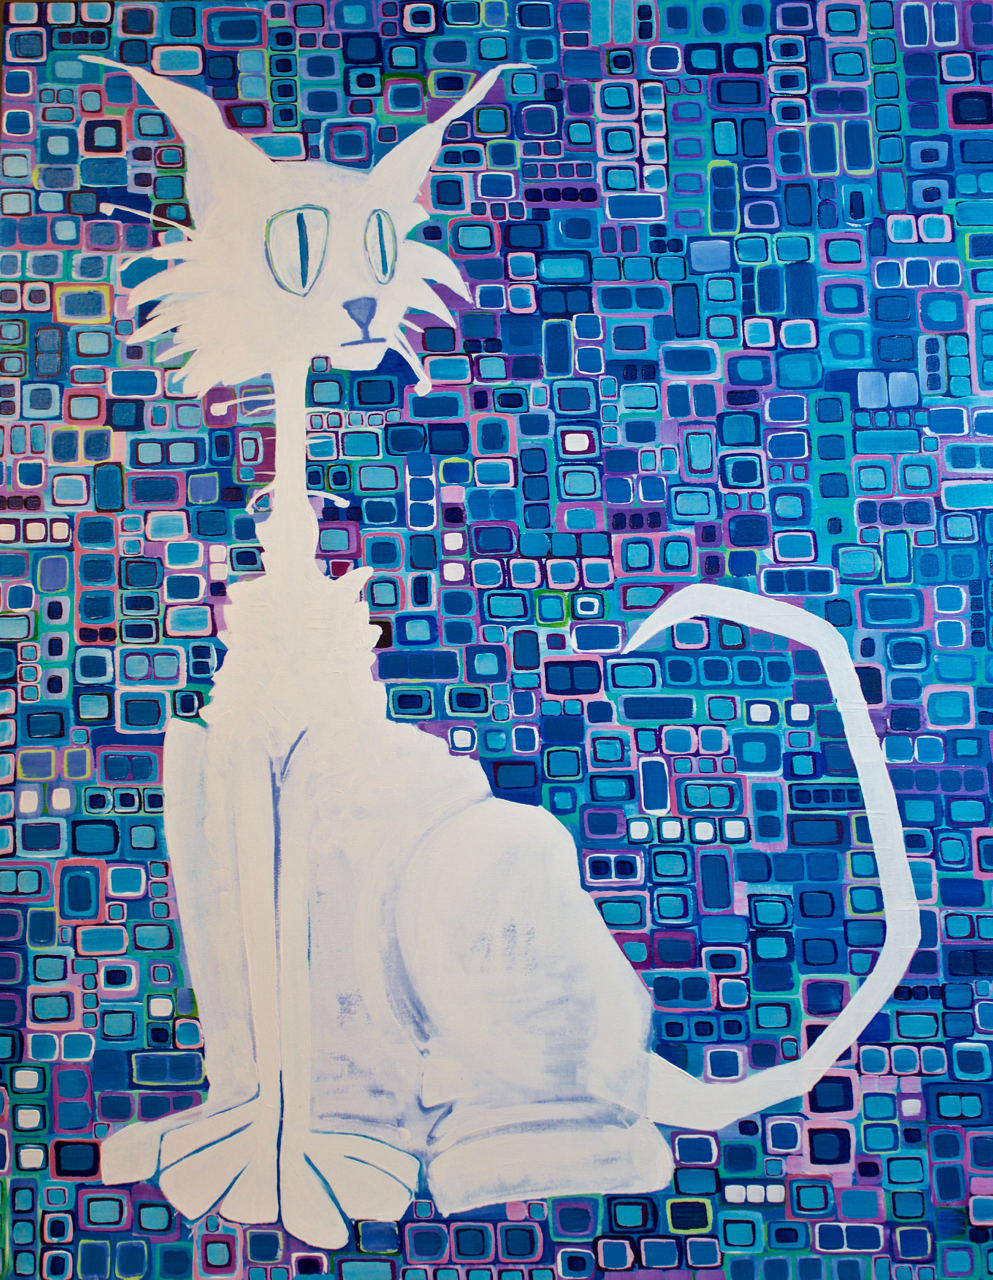 20496926-donnahoward_Scruffy the Cat_acrylic_28x30_1600.jpg